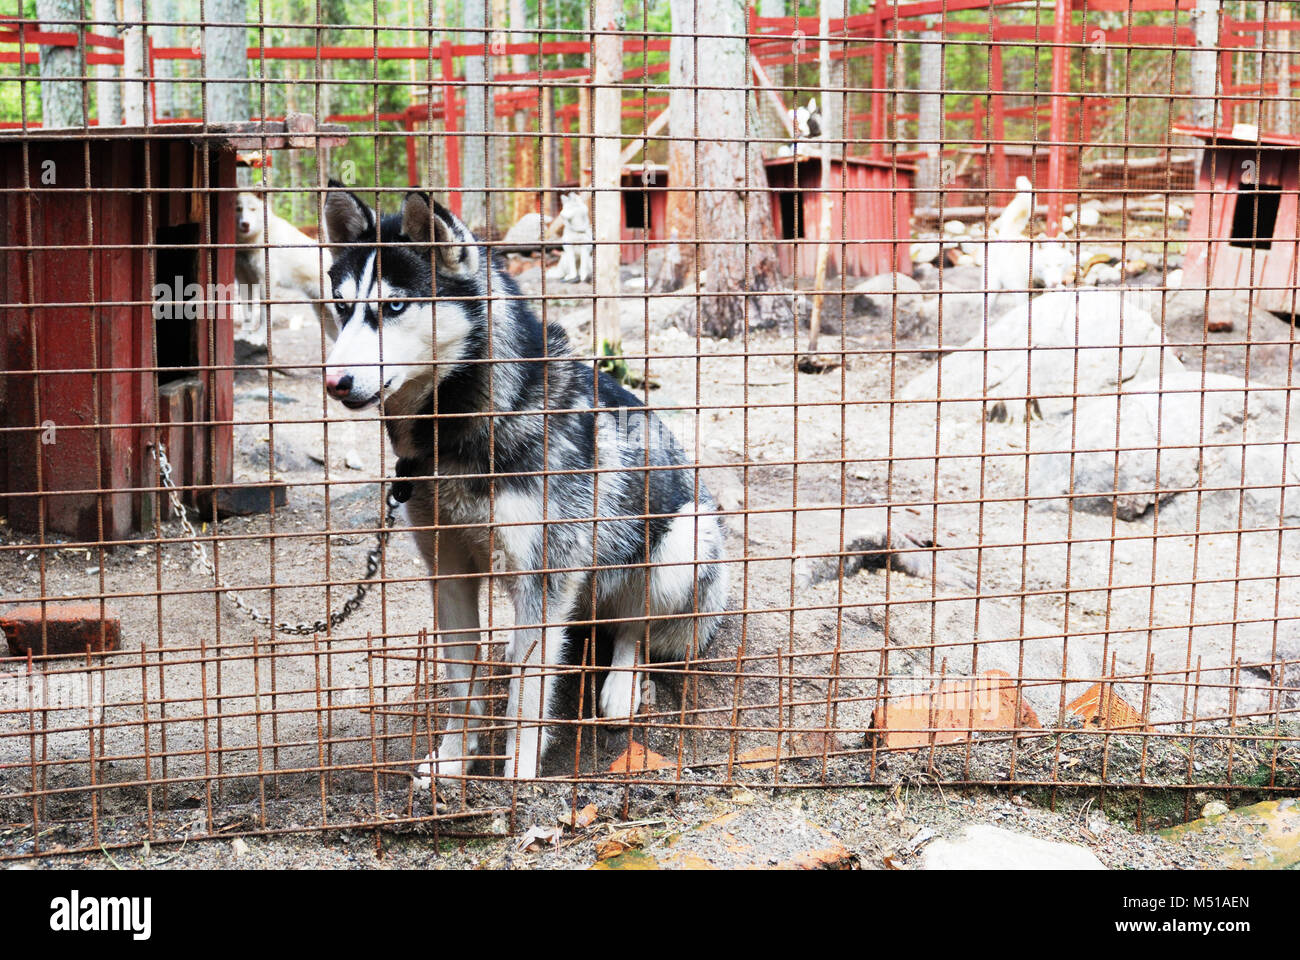 sad and tearful dog in captivity - Stock Image